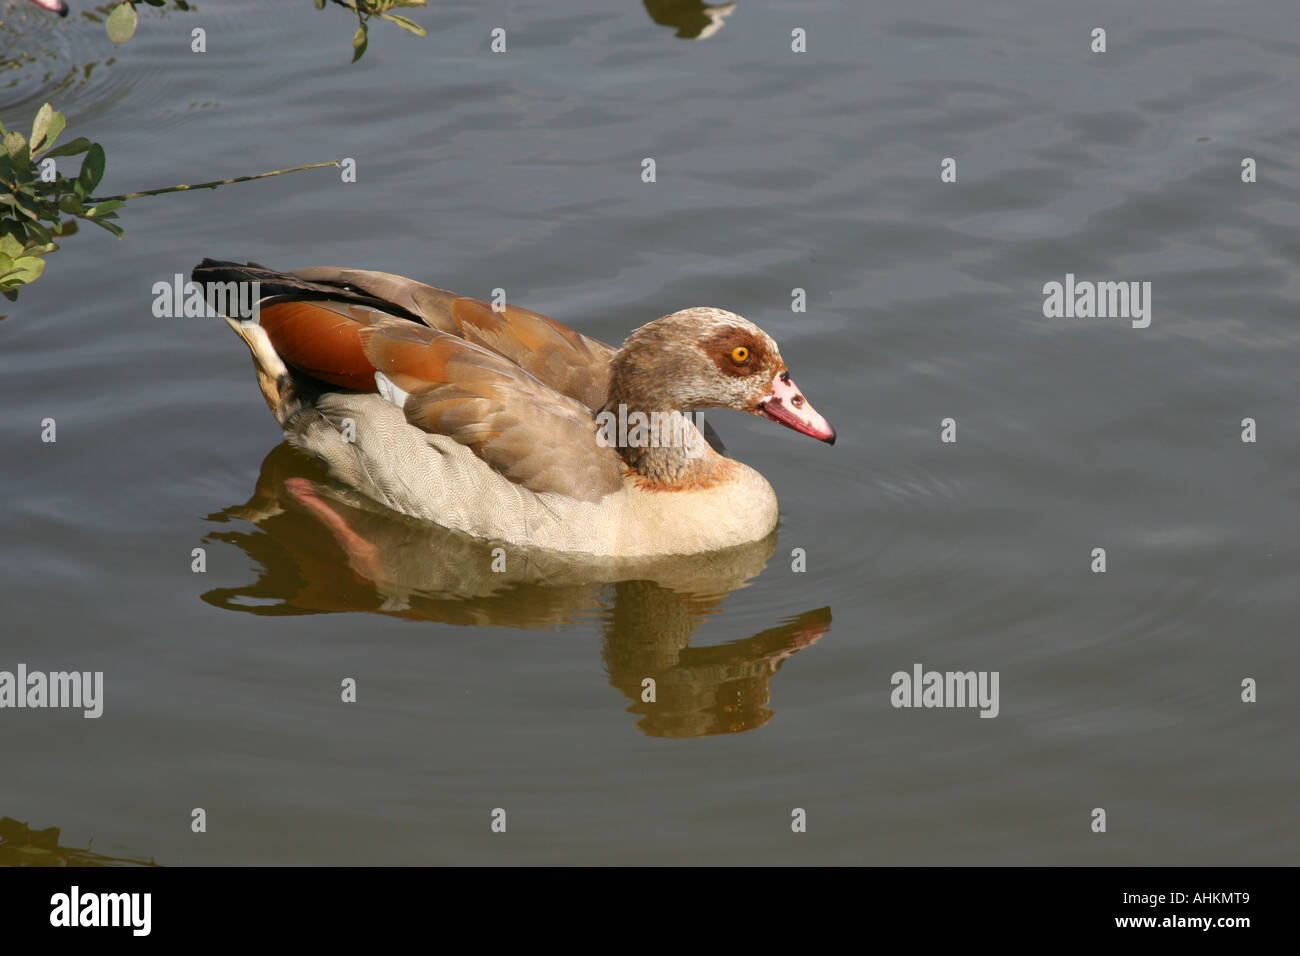 egyptian goose a type of duck on pond bank stock photo 8284808 alamy